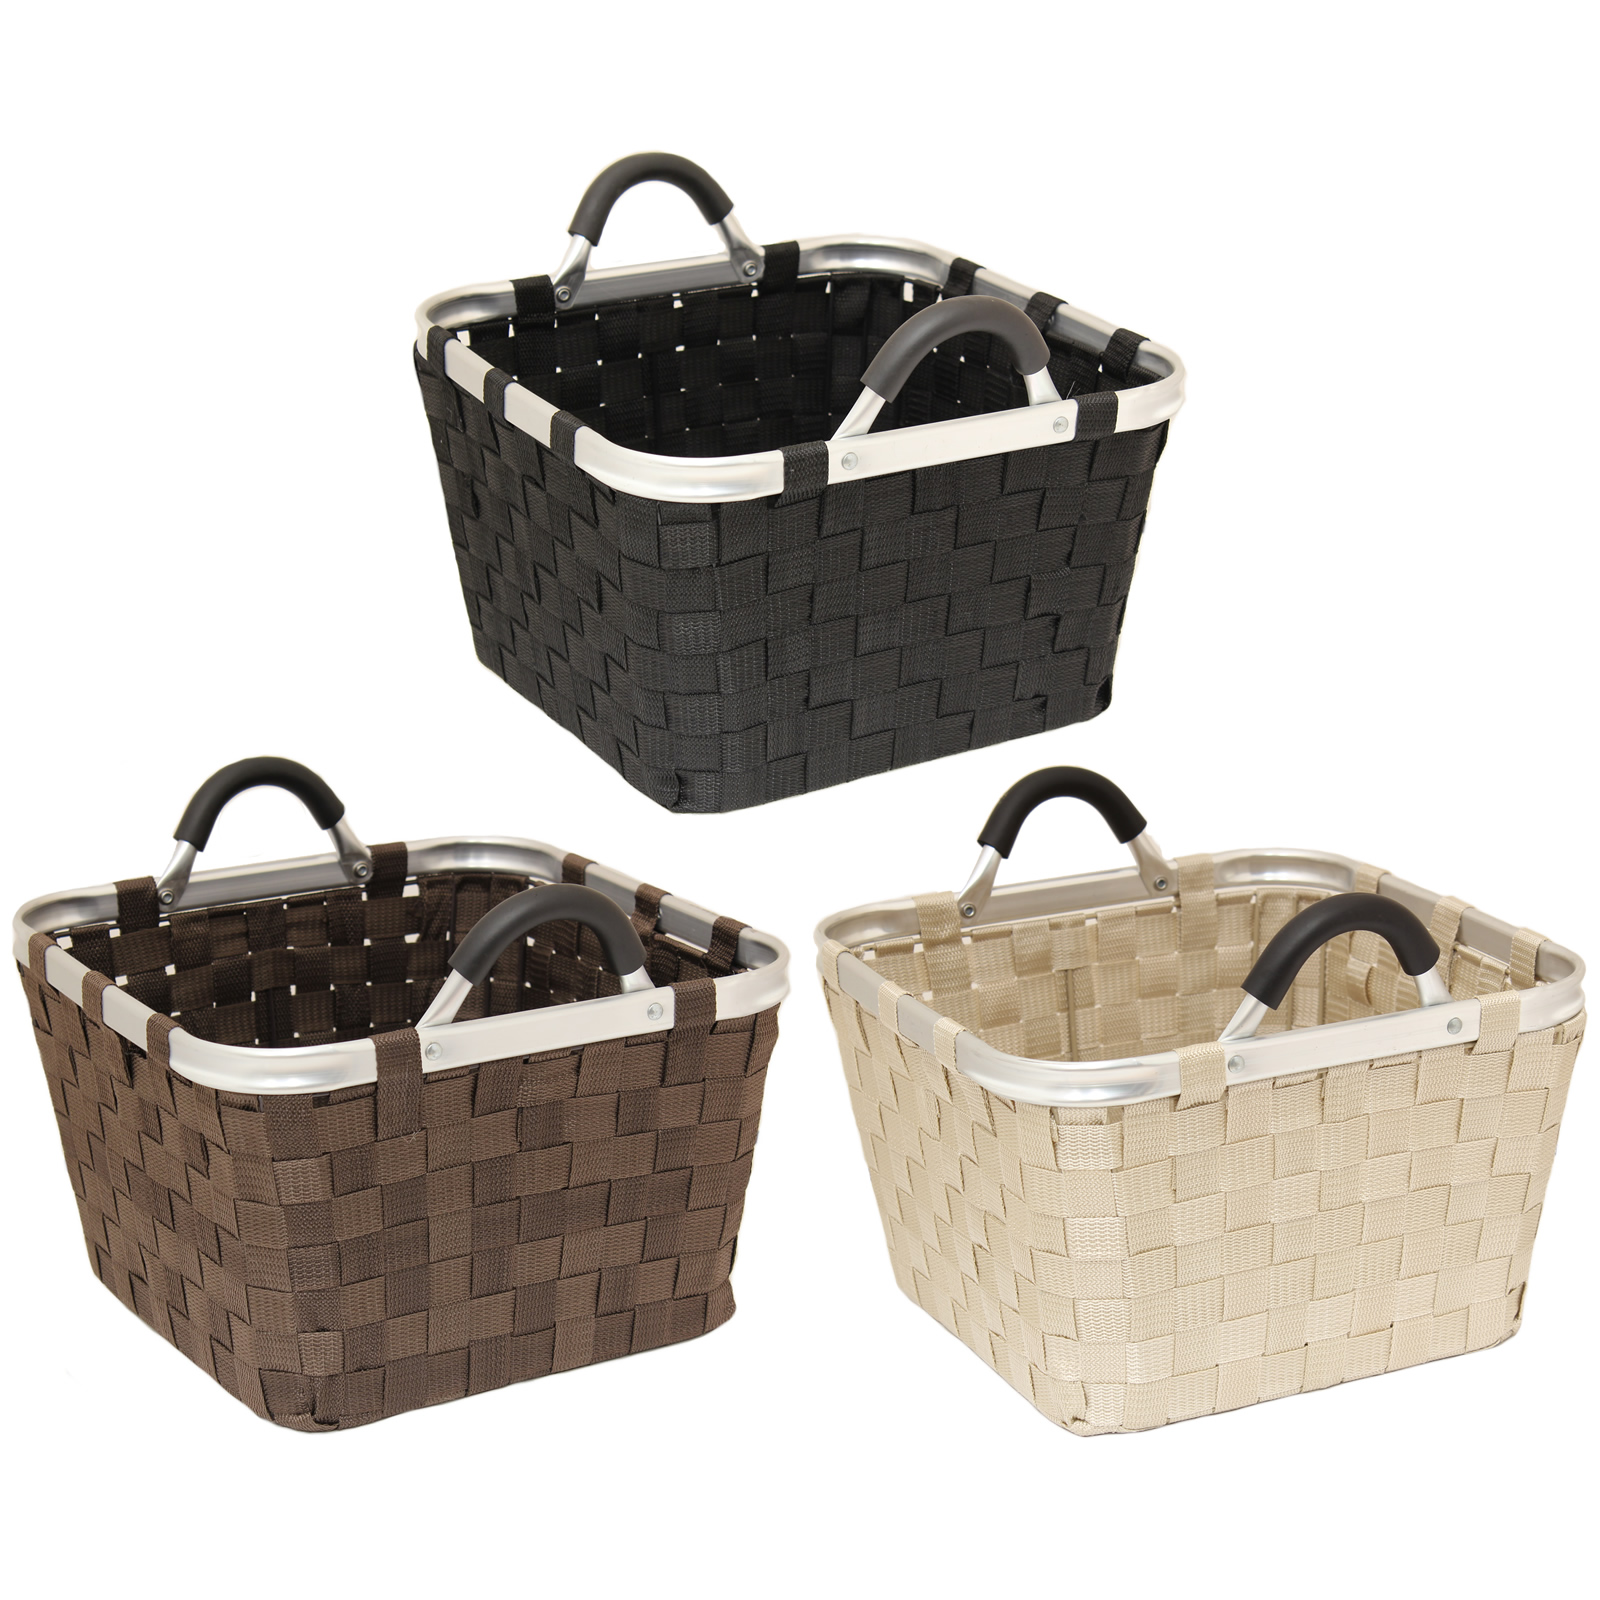 LARGE STRONG SQUARE WOVEN FABRIC STORAGE BASKET KITCHEN ...